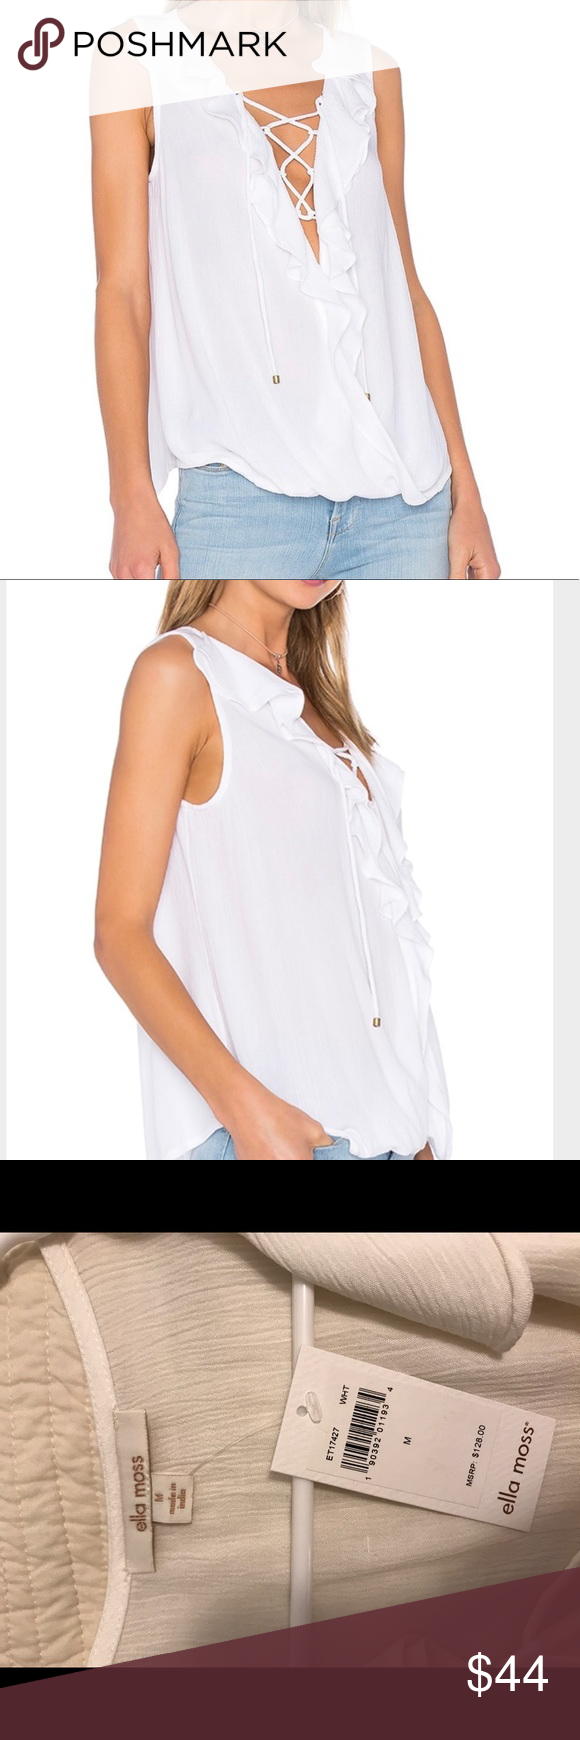 Ella Moss - Miko Tank White - Medium Ella Moss ruffle front, sleeveless tank white. Size M, never worn, purchased this spring from Revolve Clothing Online. It's gorgeous brand new condition stored in my closet that is pet free and smoke free. Ask anything! 🛍❤️👚 Ella Moss Tops